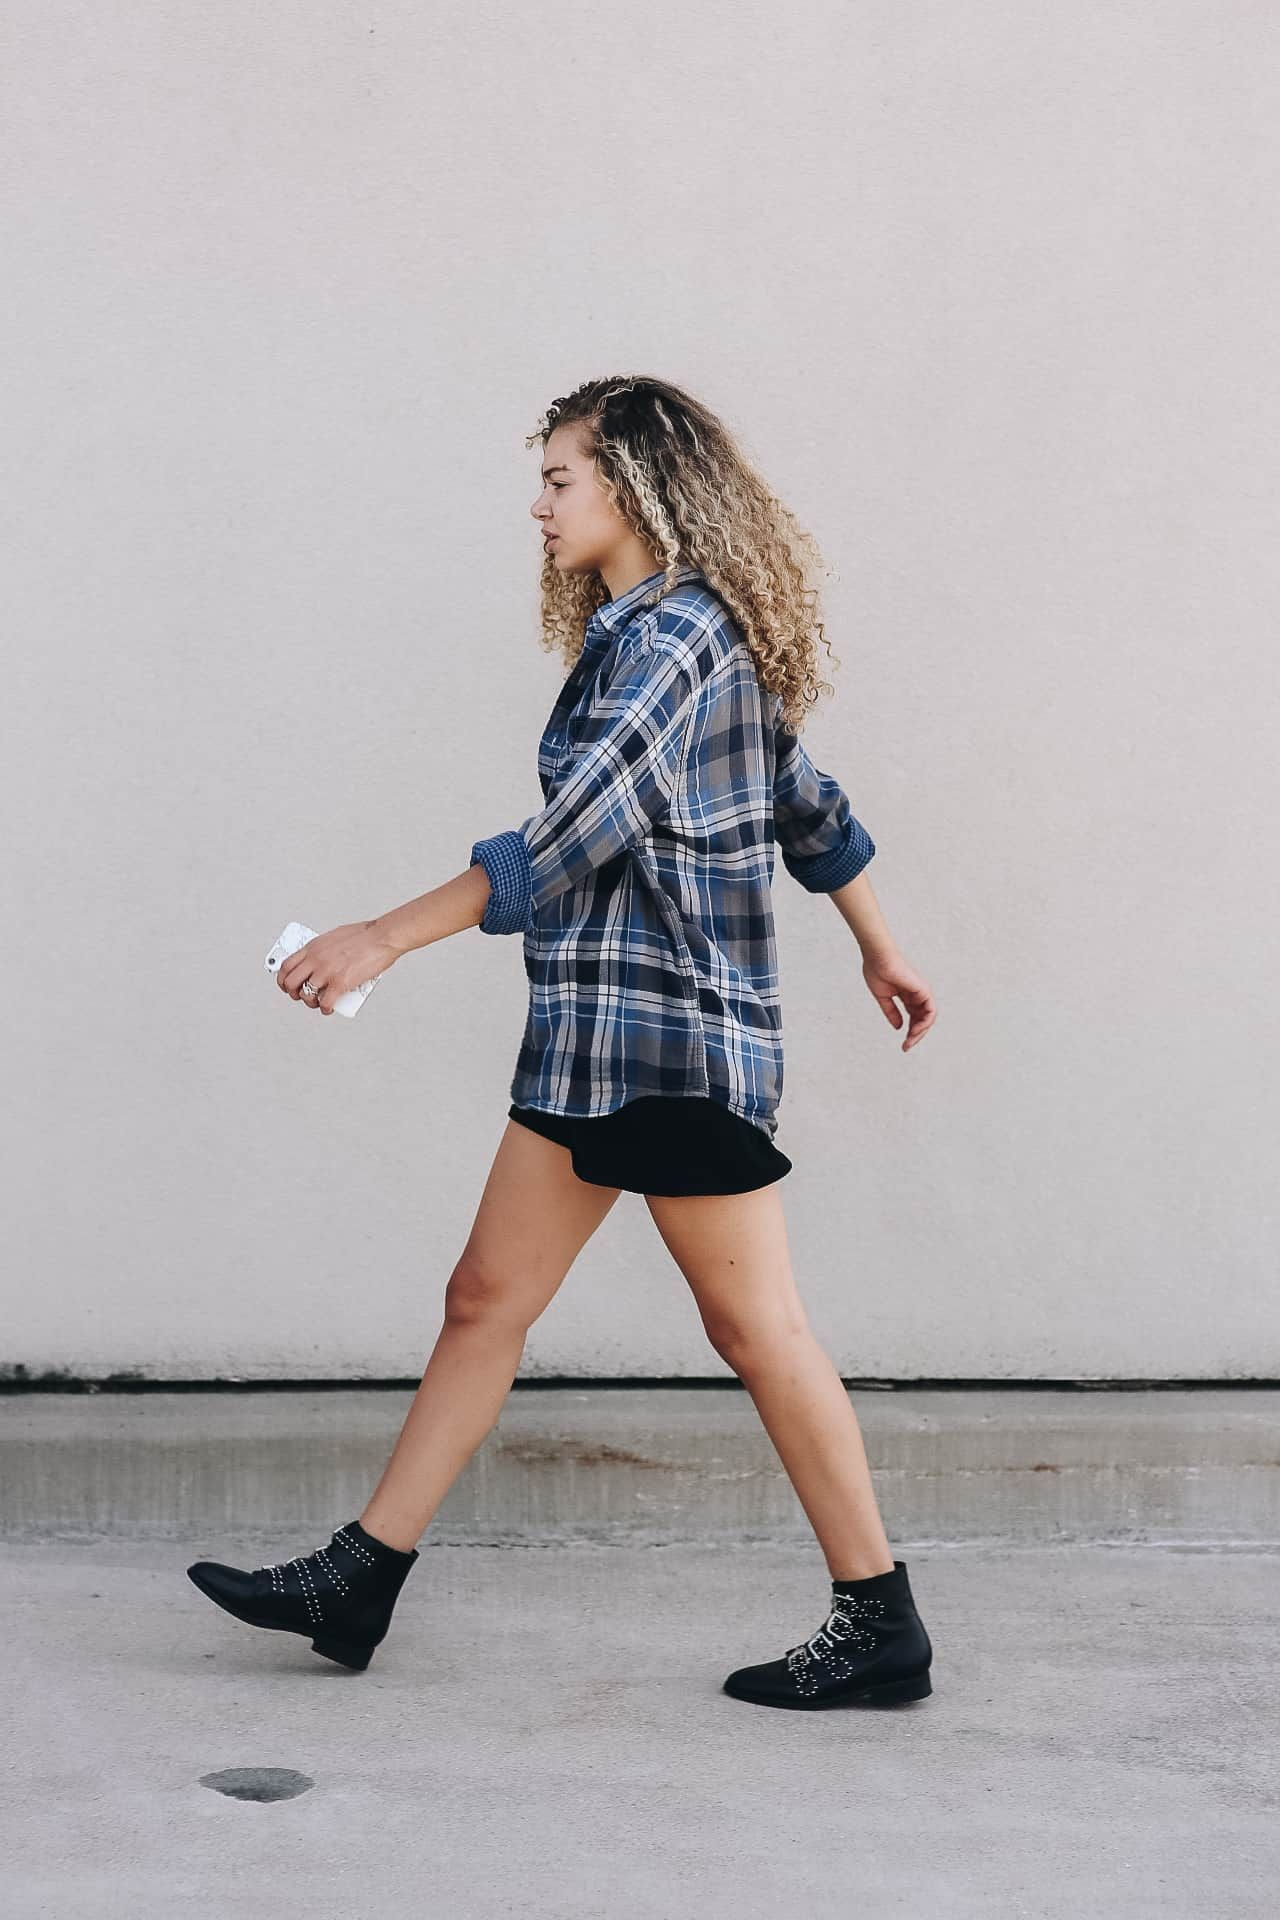 Little Black Dress With Flannel And Ankle Boots Outfit Ideas Fashion Model Off Duty Look Chic Clothing Style Casual Fall Outfits Fashion Hacks Clothes [ 1920 x 1280 Pixel ]